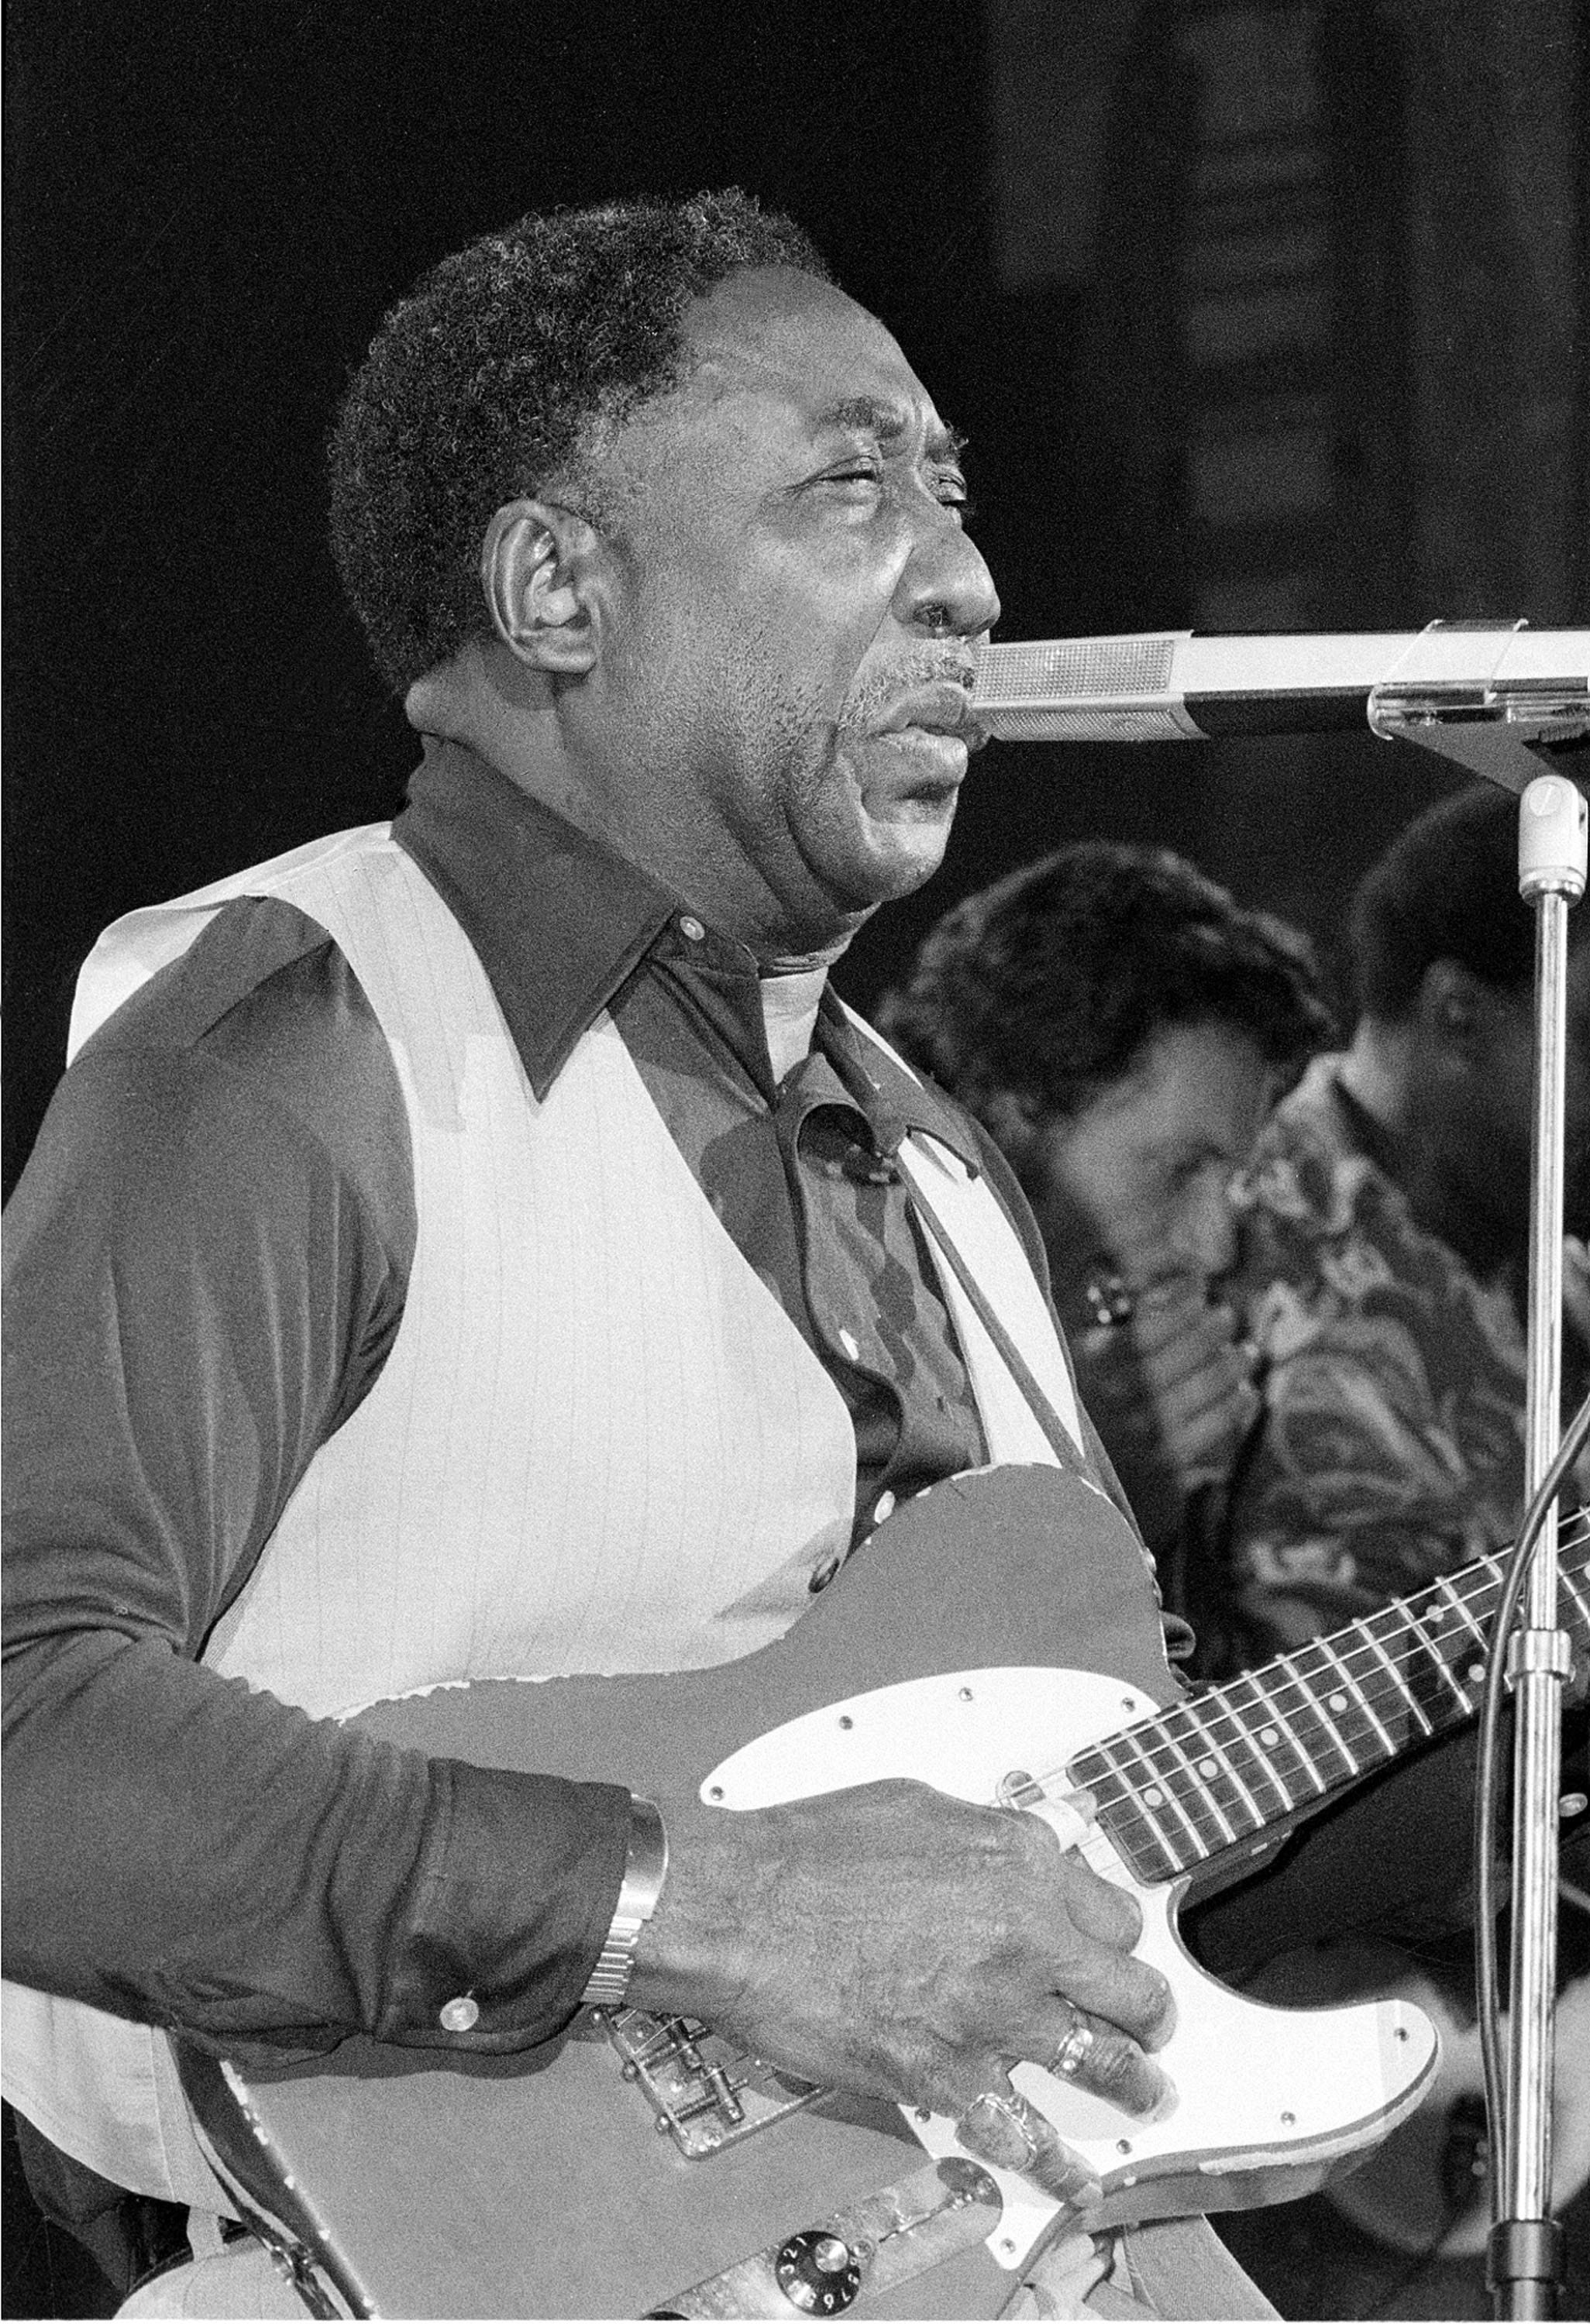 Blues musician Muddy Waters performs at New York's Palladium Theater, Oct. 1, 1977 in a benefit performance for the New York Public Library.